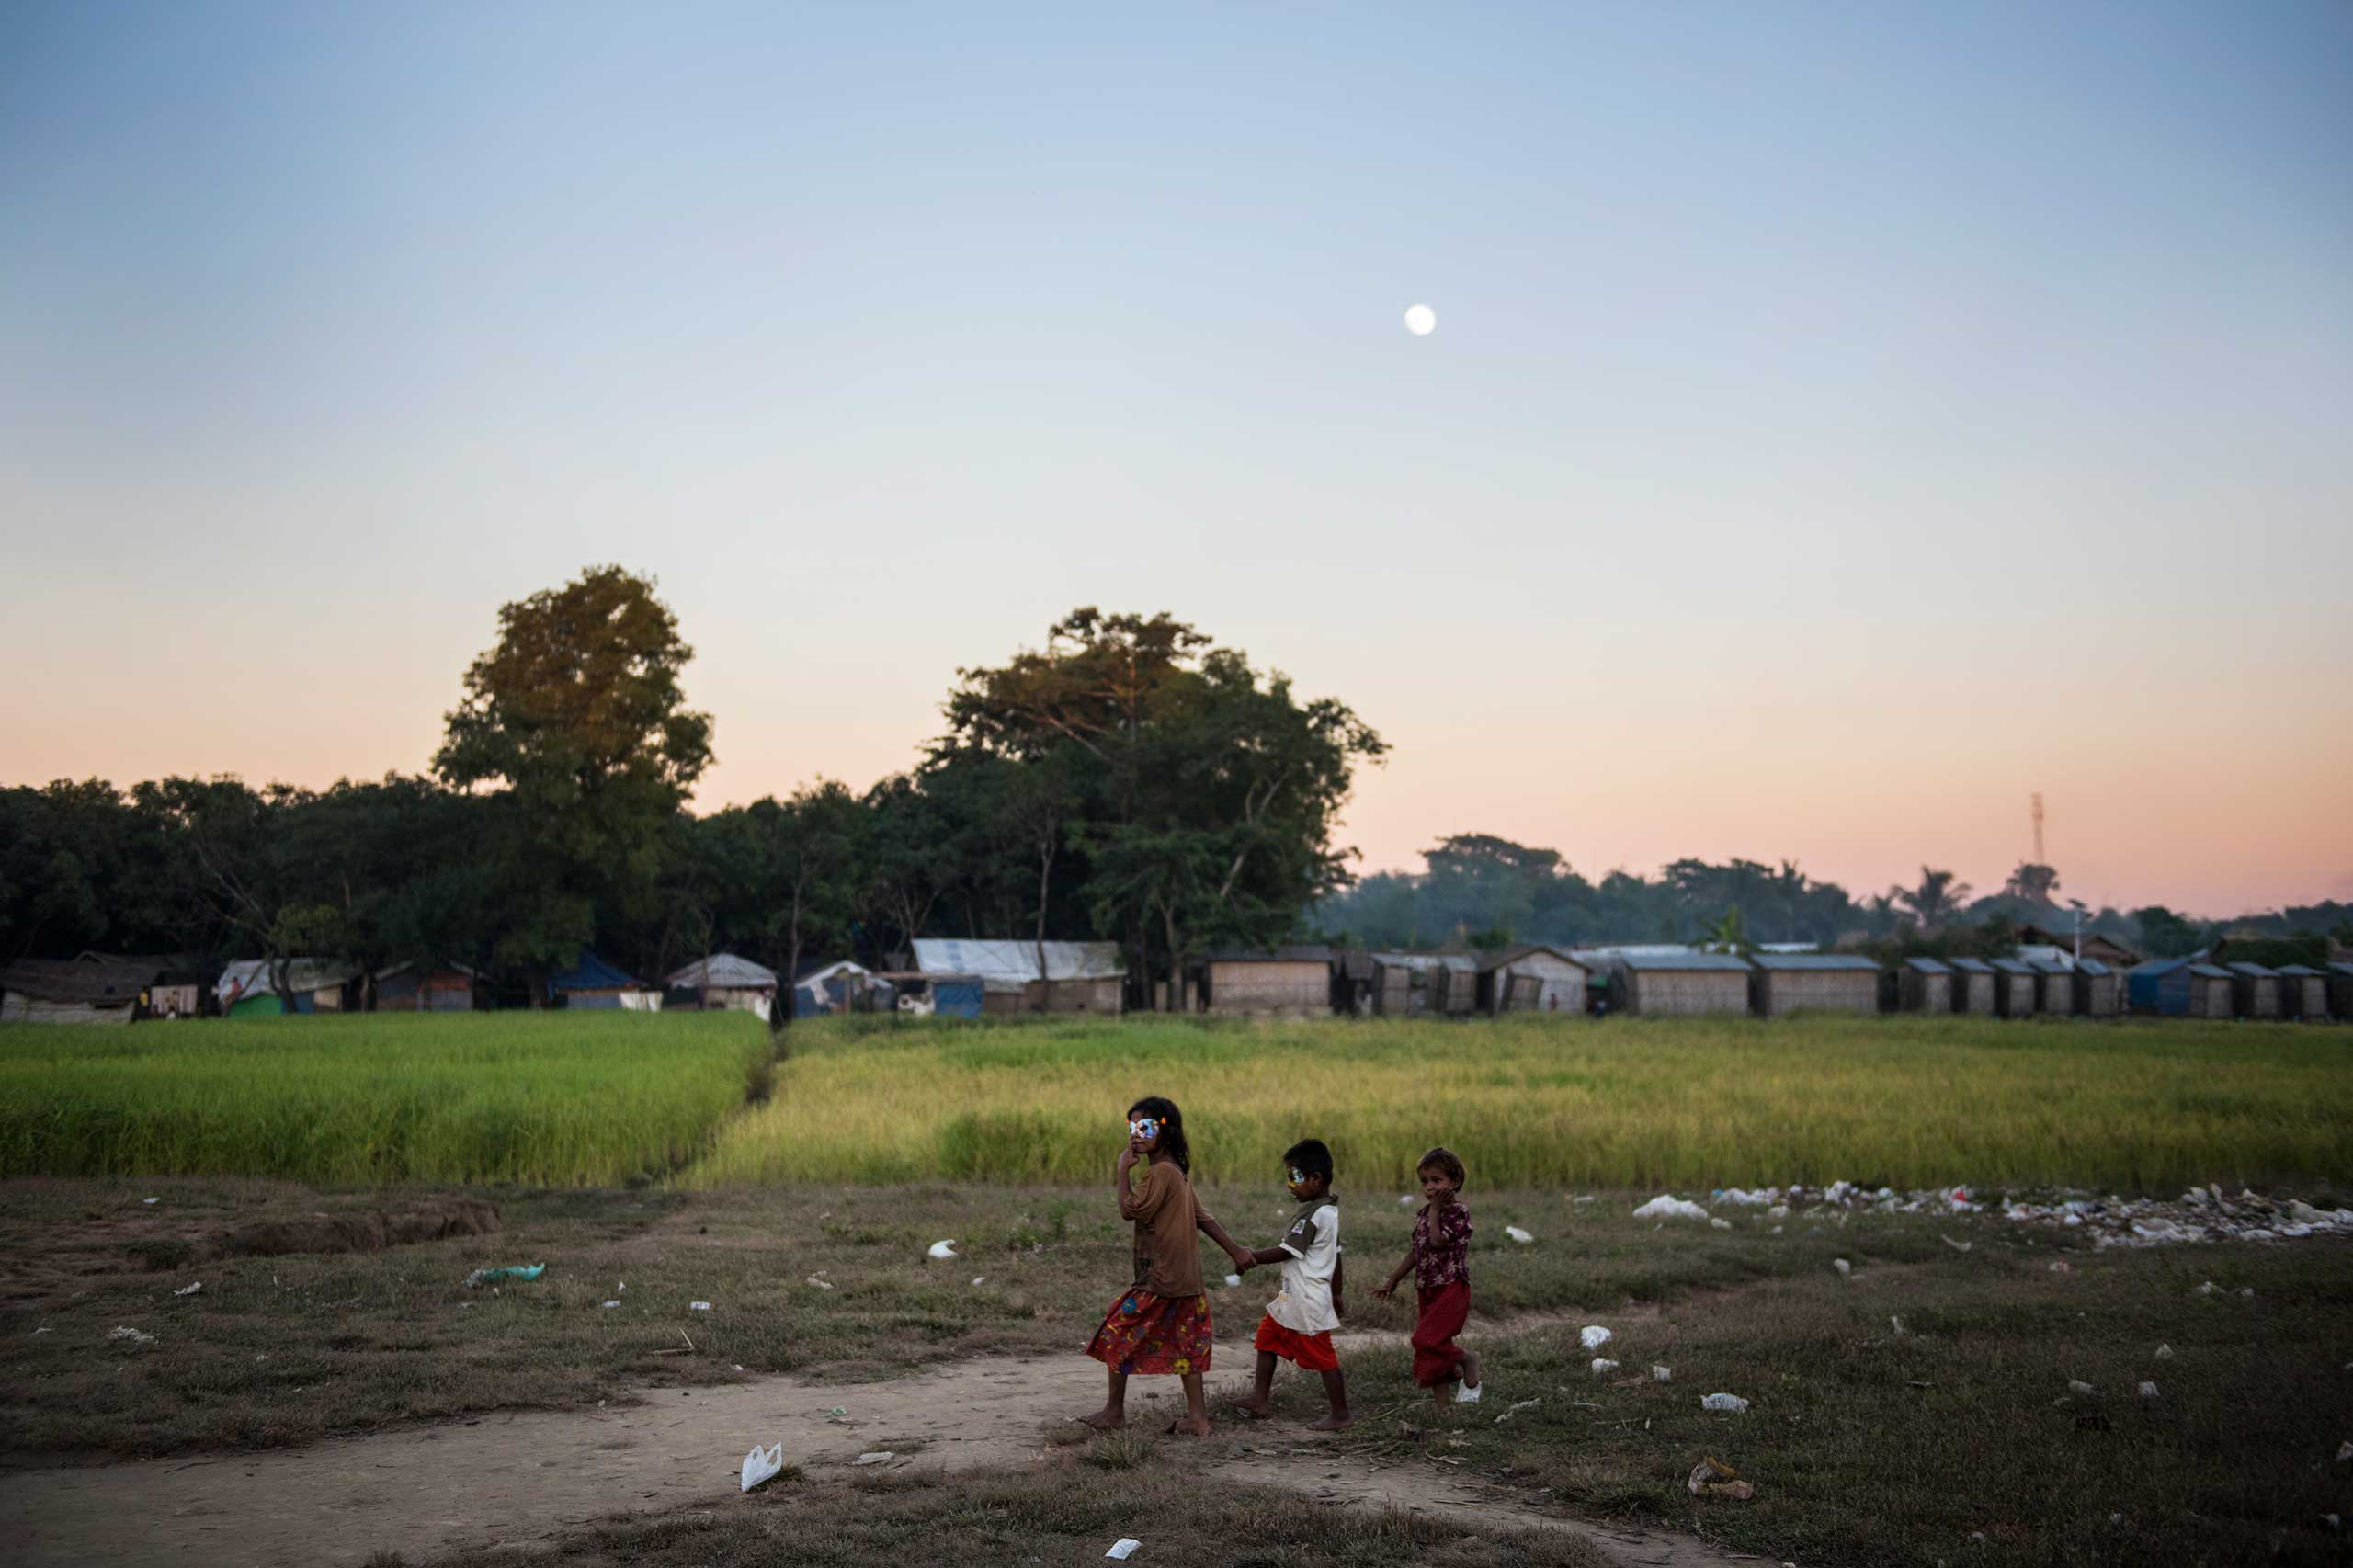 Rohingya children walk through the Thay Chaung camp at dusk for the Internally Displaced outside of Sittwe, which houses nearly 3000 people, Nov. 23, 2015.